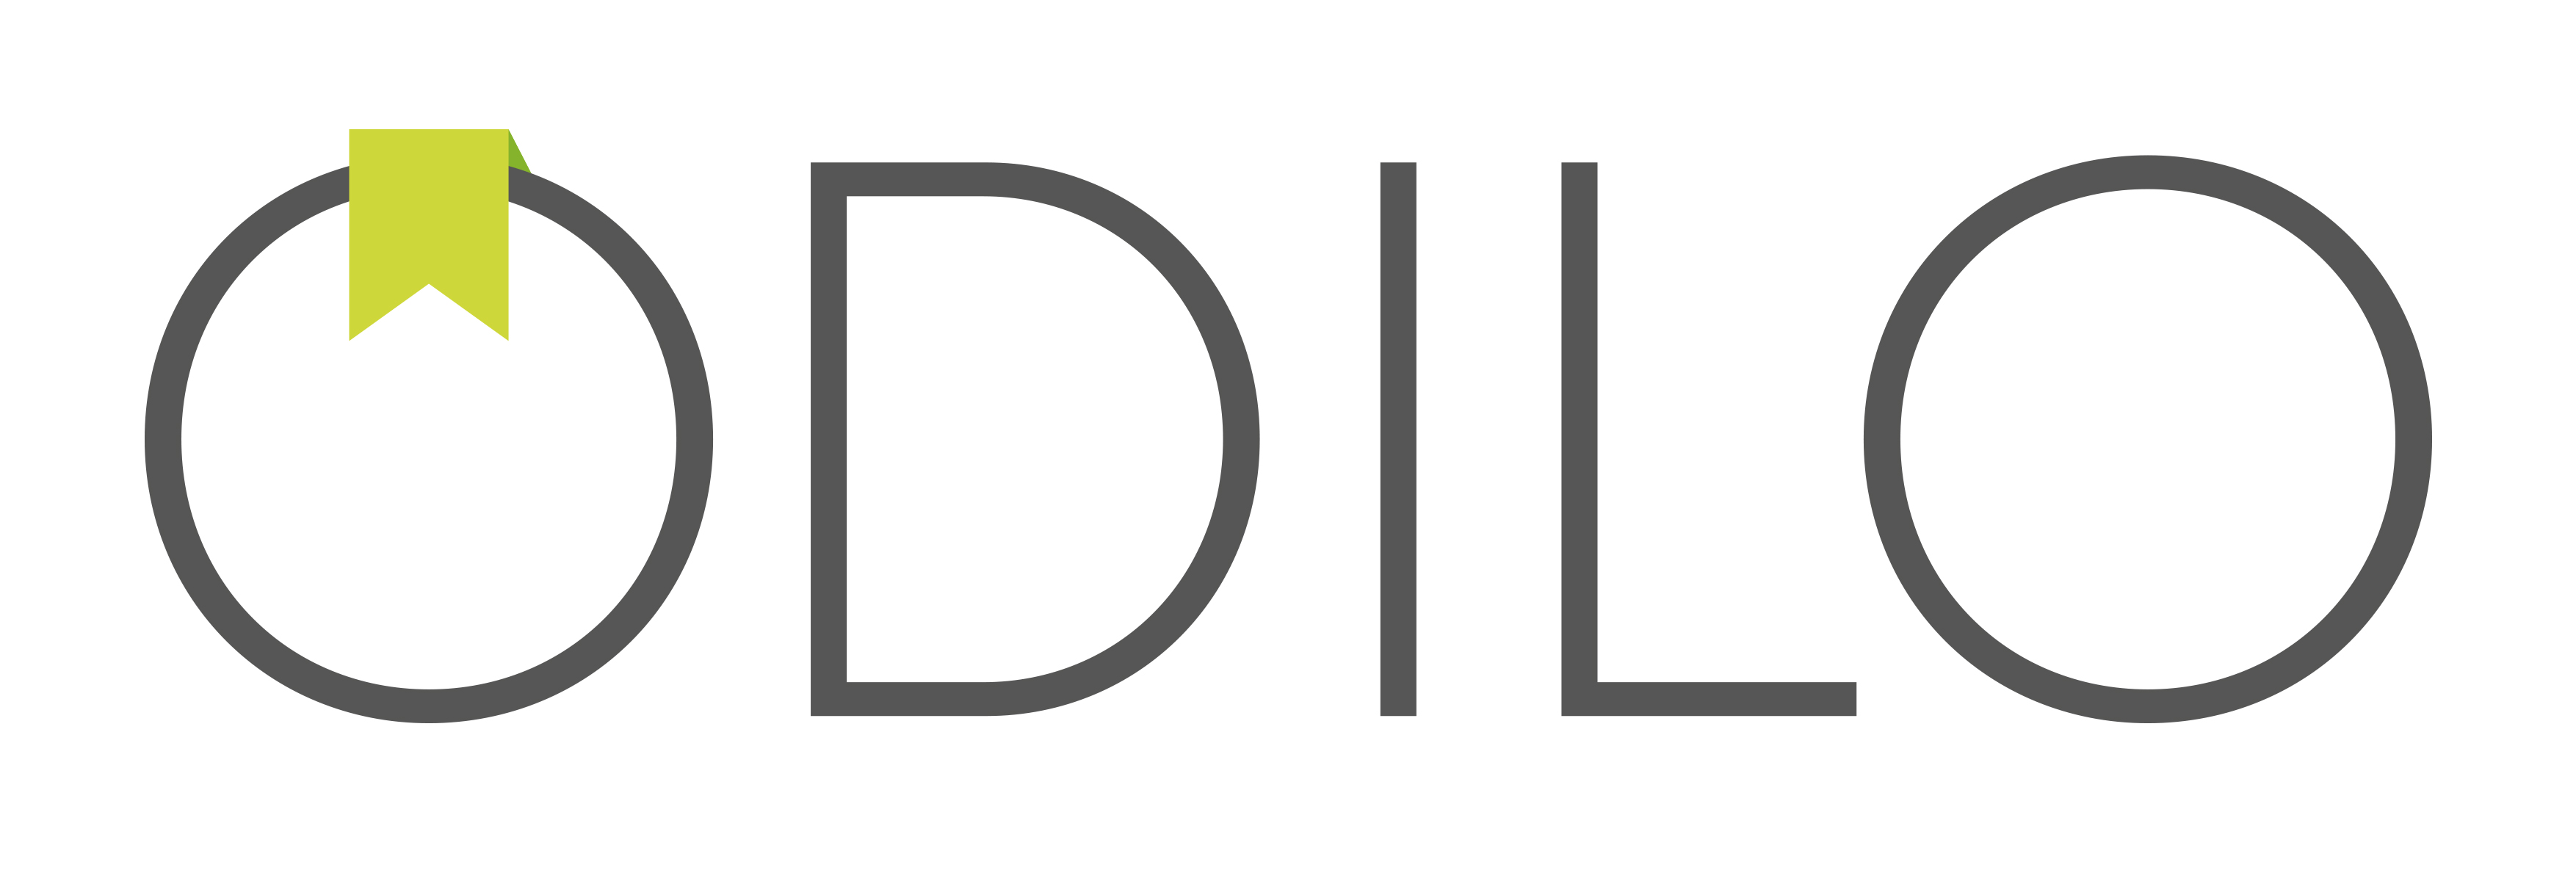 Odilo digital content management